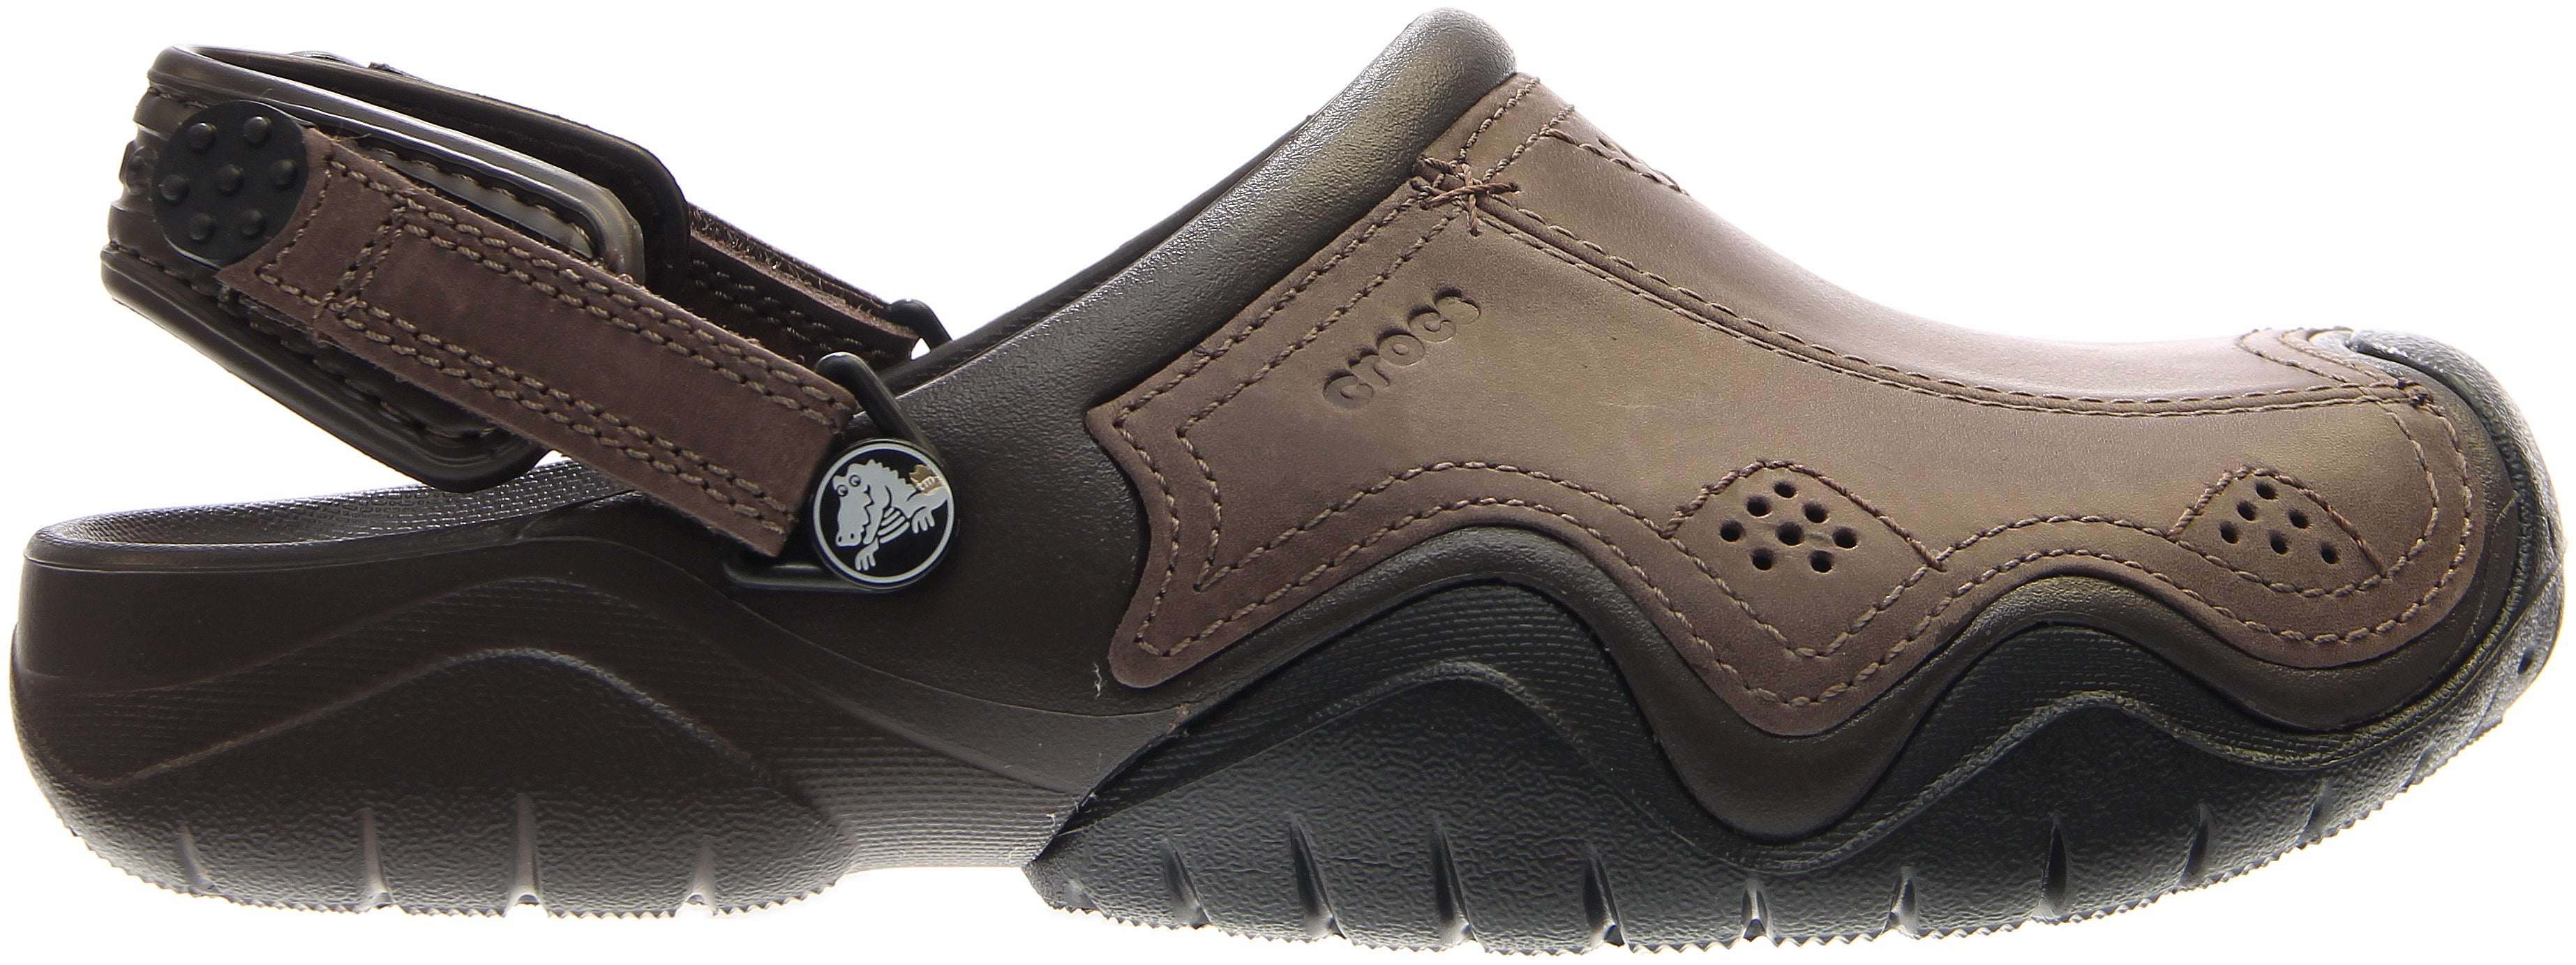 Crocs Swiftwater Leather